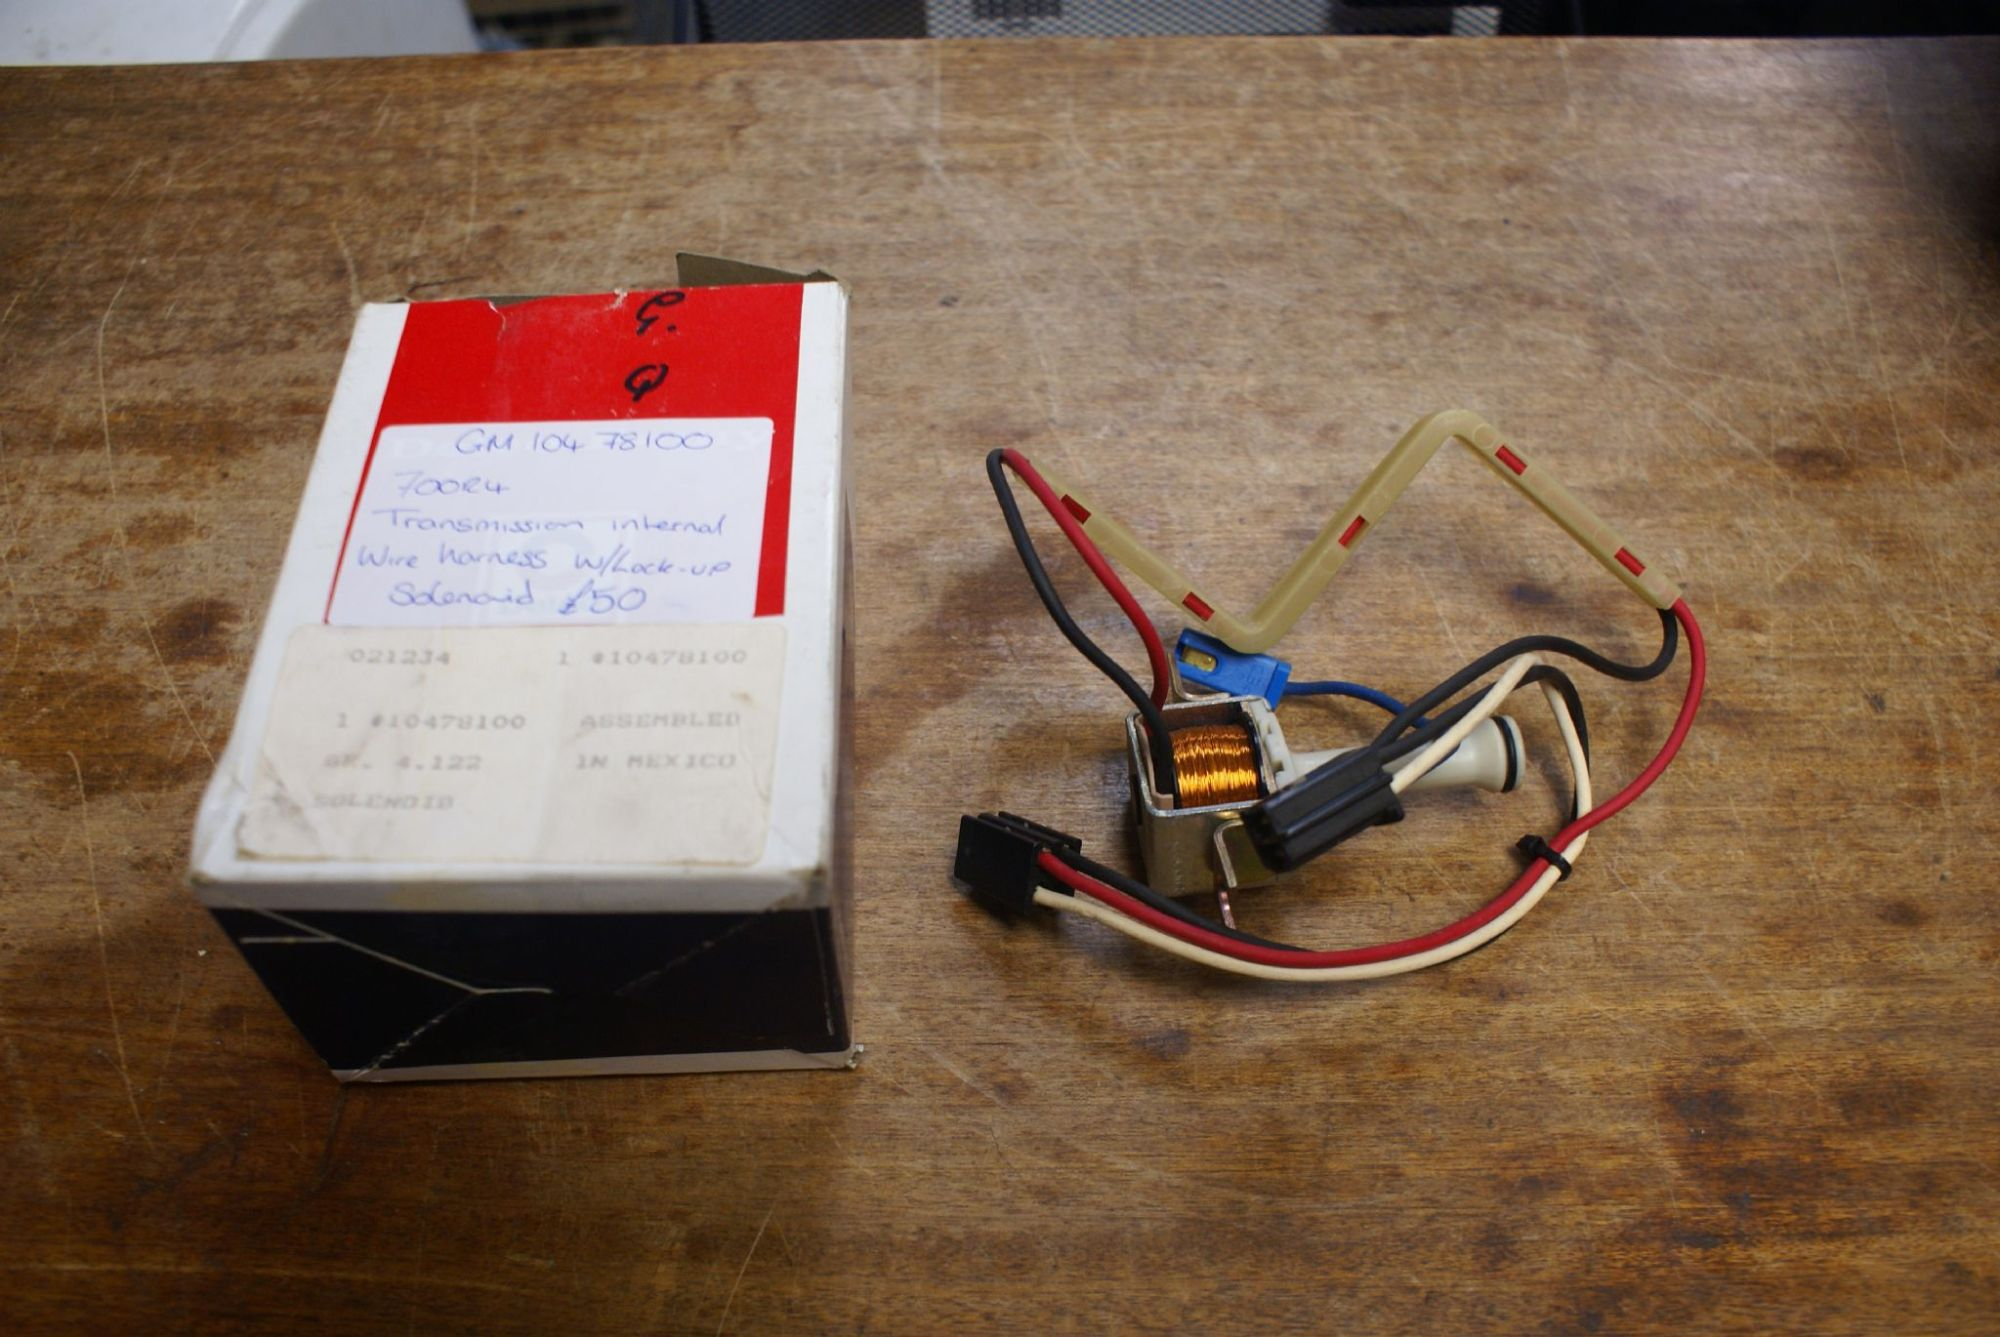 hight resolution of 1982 1993 c4 corvette 700r4 transmission internal wire harness w lock up solenoid gm 10478100 new